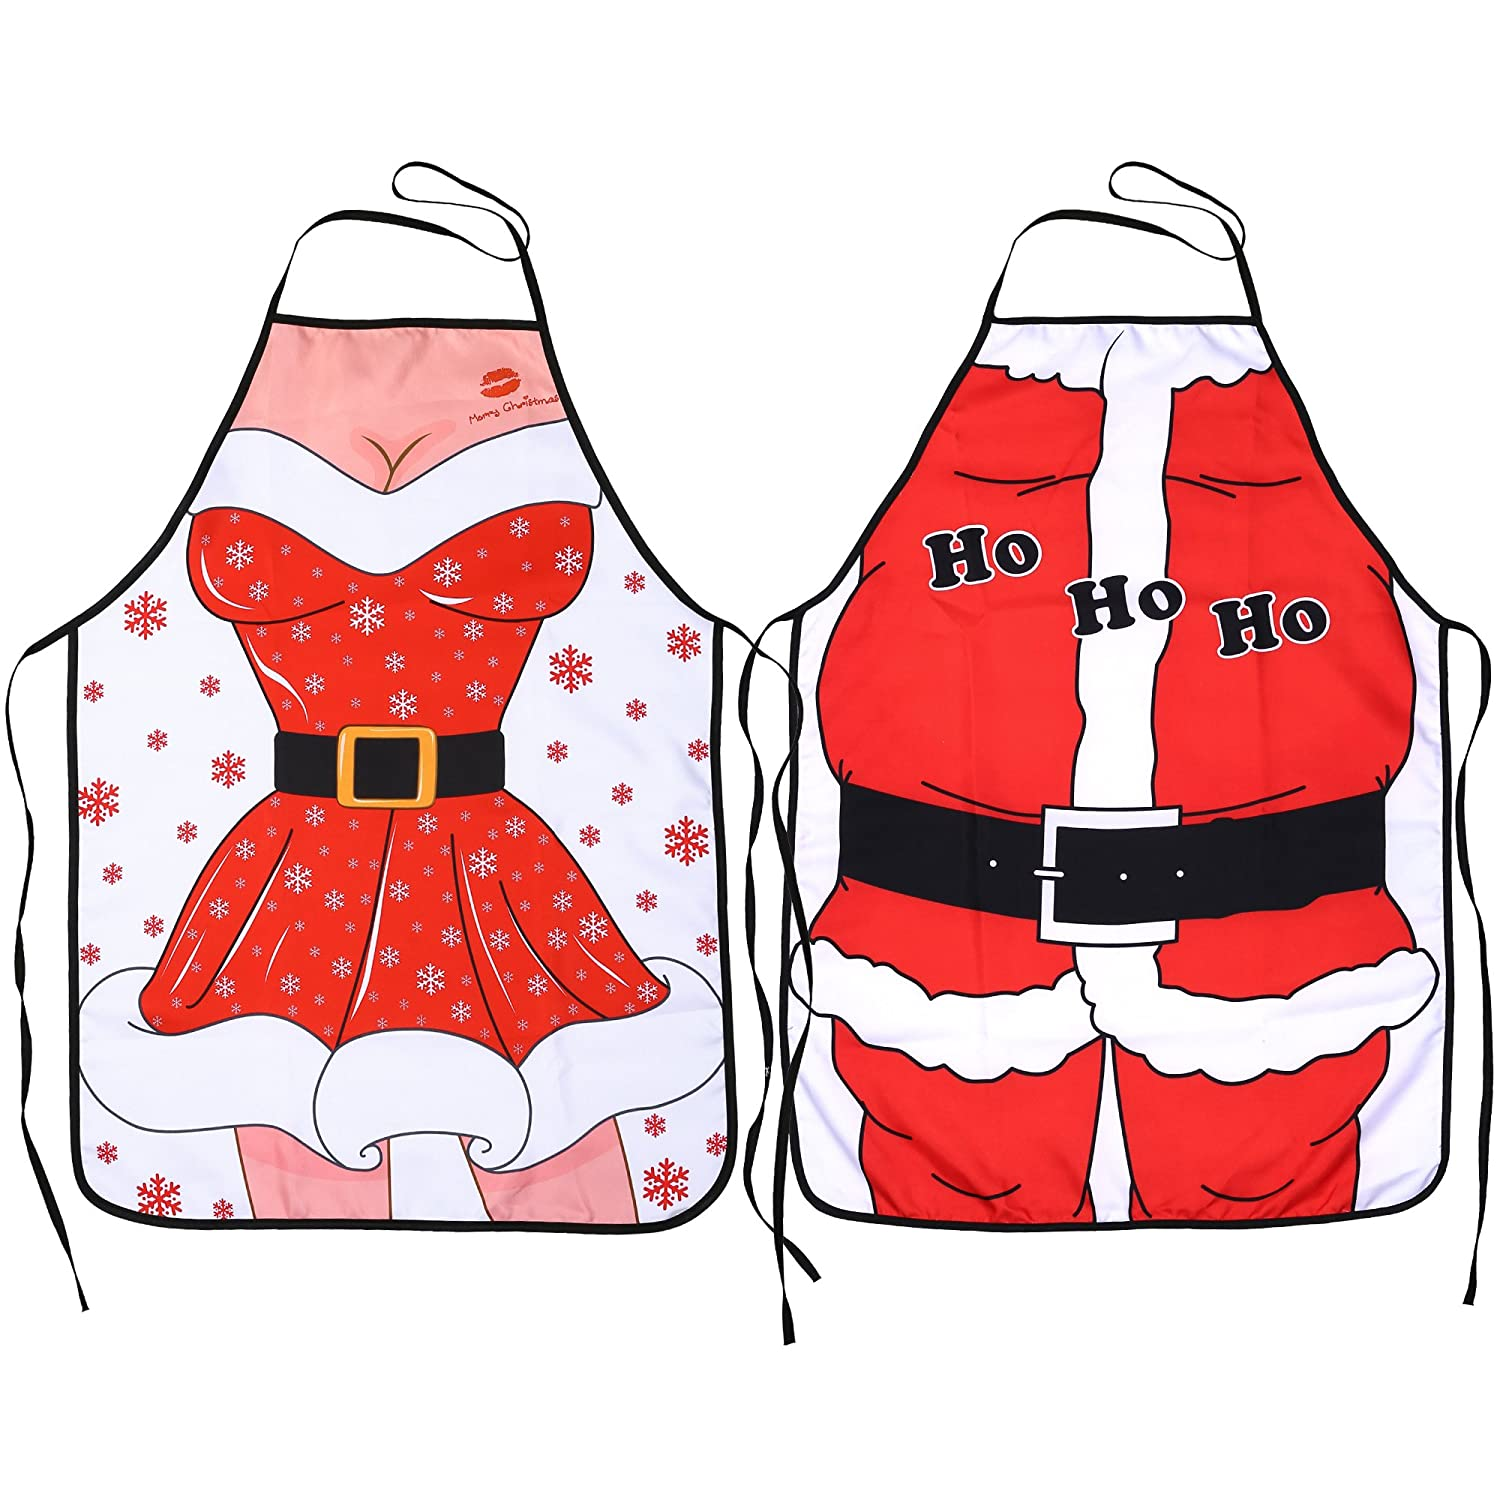 Kitchen Christmas Aprons(Pack of 2),Konsait Santa Anime Chef Aprons Wife&Husband Funny Flirty Xmas Gift Apron for Men Women Adult Children Bib BBQ Cooking Christmas Party Favor Supplies Others